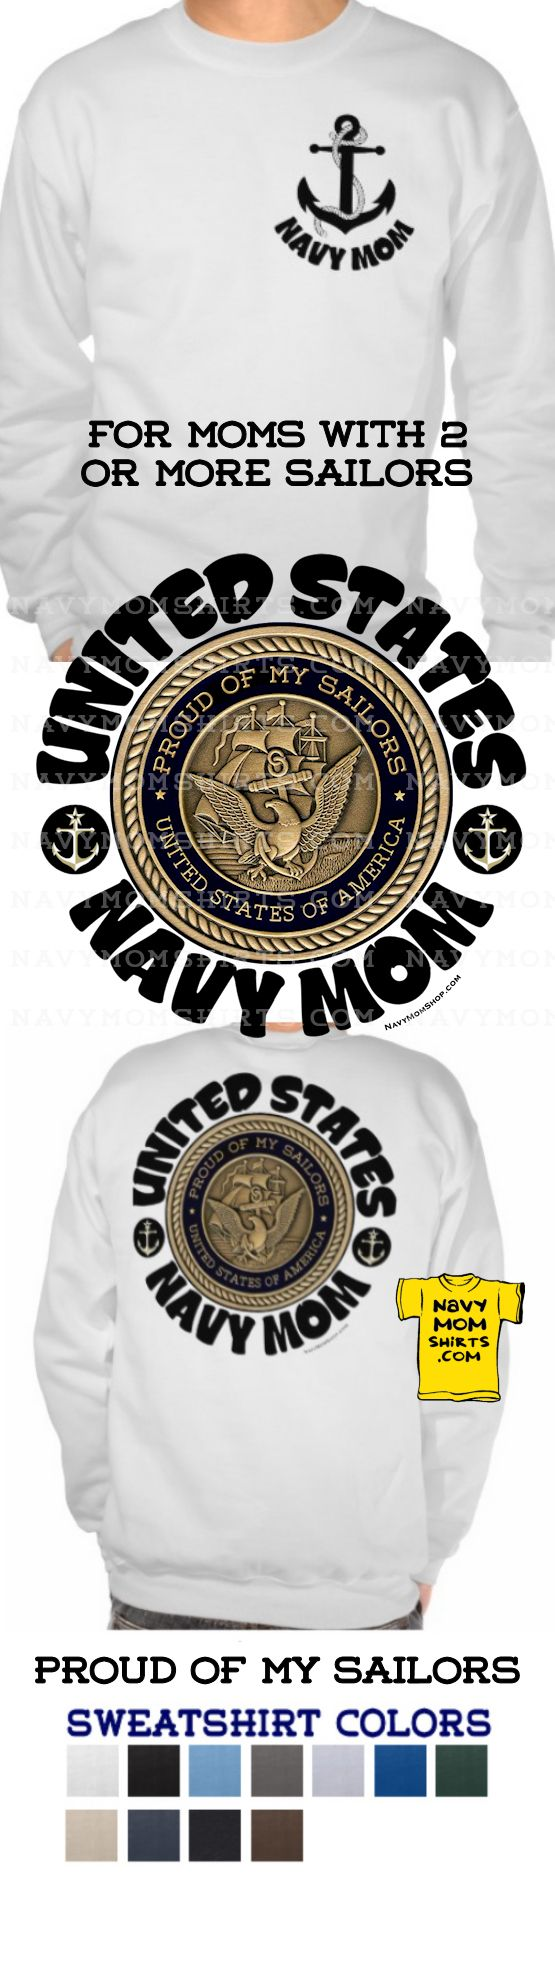 Got 2 or More Sailors?? This is a great sweatshirt for a Navy Mom with more than 1 sailor. Lots of COLORS to choose from! Get it Here: NavyMomShirts.com